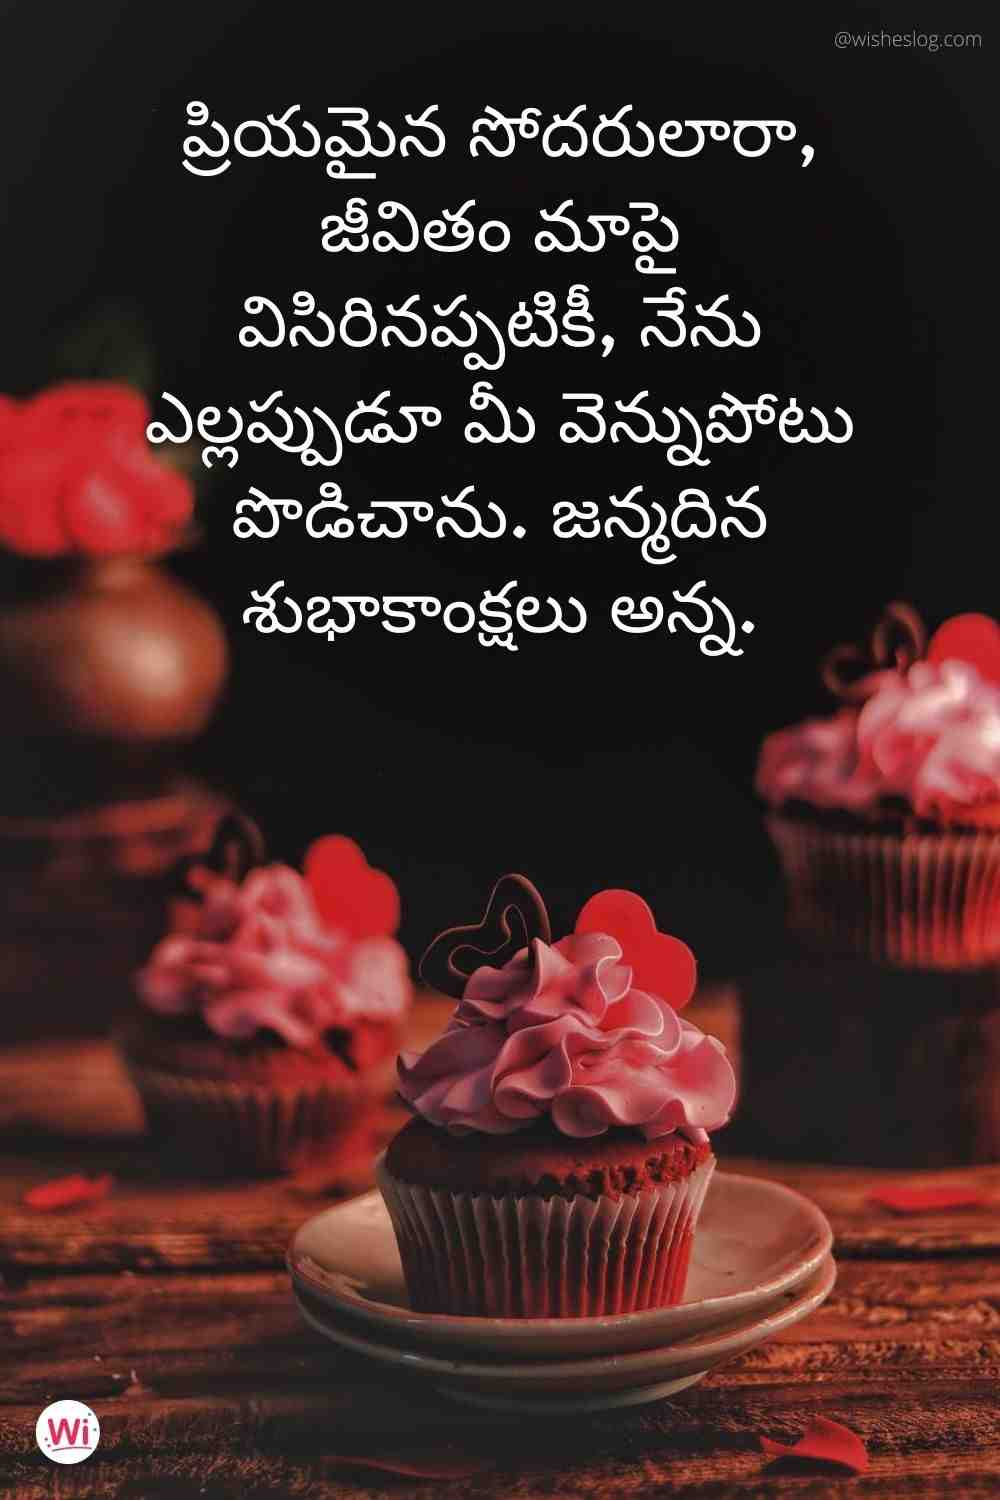 birthday wishes in telugu images for brother